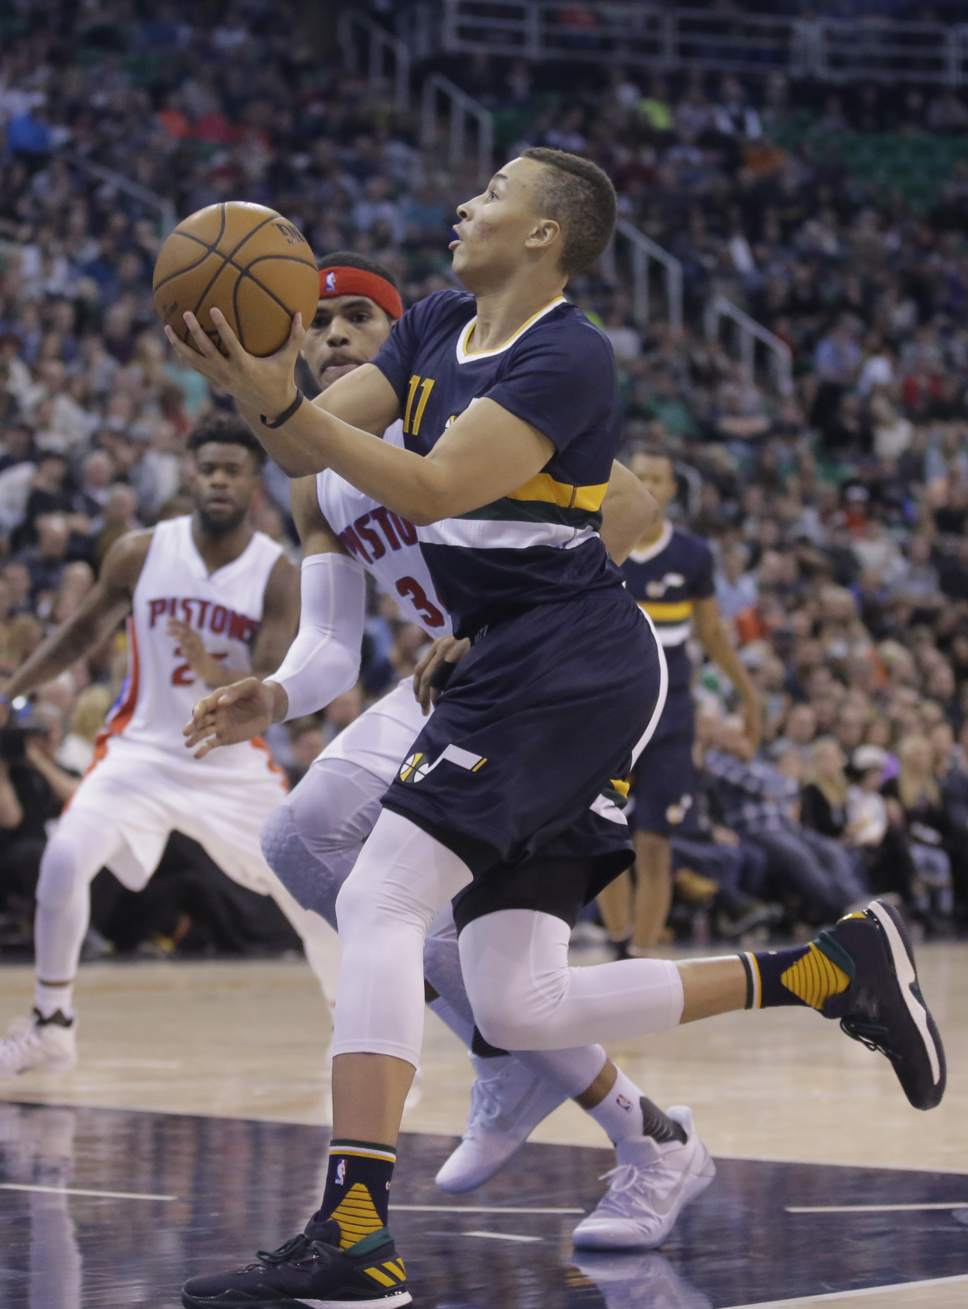 Utah Jazz guard Dante Exum (11)goes to the basket as Detroit Pistons forward Tobias Harris, rear, defends in the second half during an NBA basketball game Friday, Jan. 13, 2017, in Salt Lake City. The Jazz won 110-77. (AP Photo/Rick Bowmer)